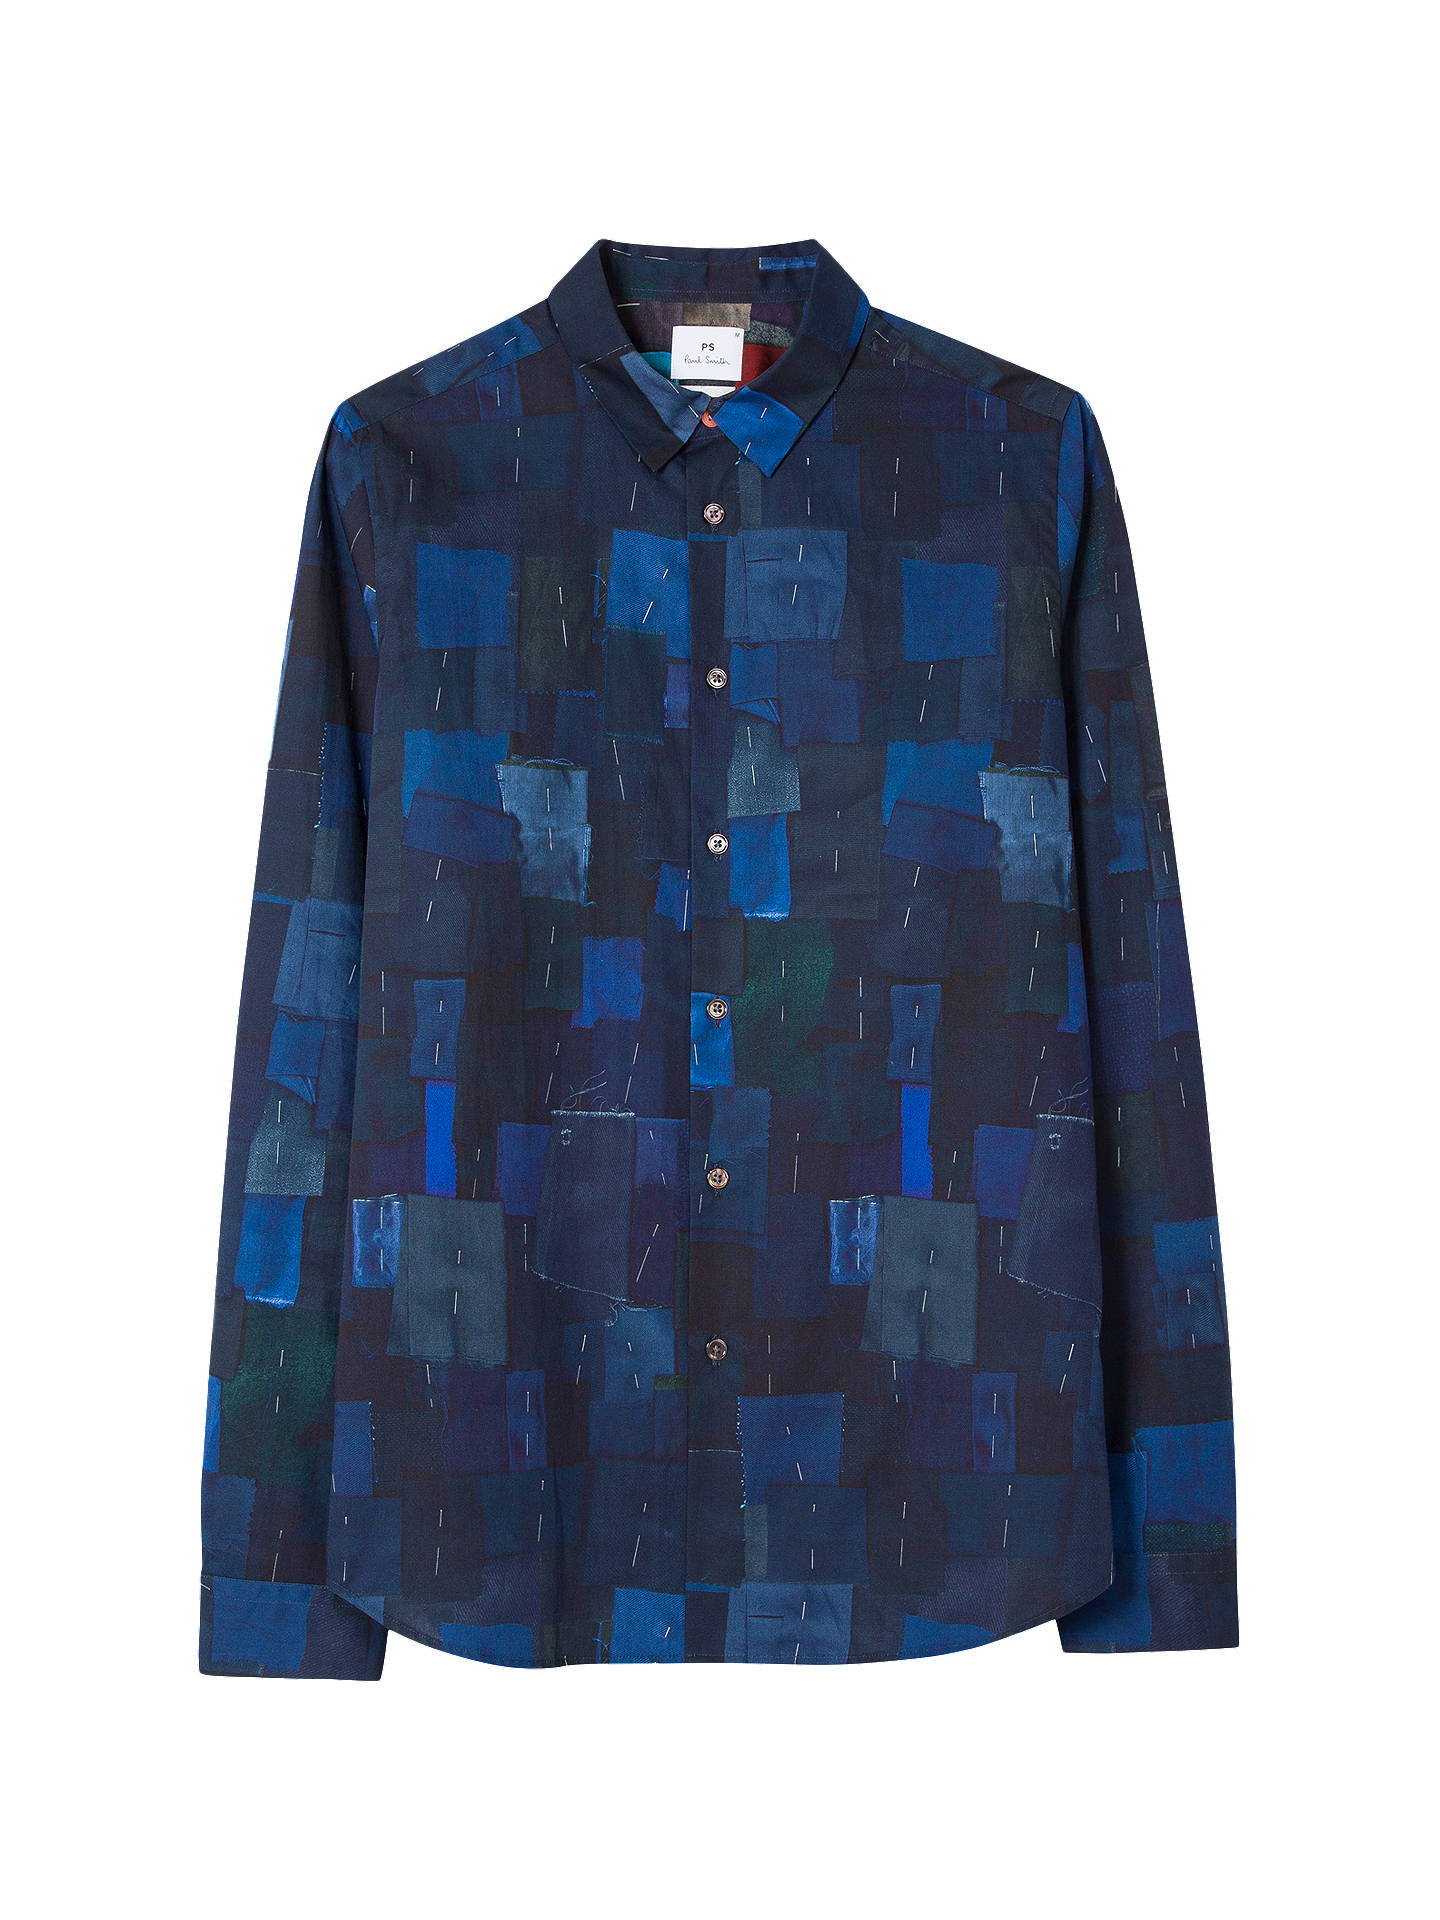 BuyPS Paul Smith Digital Print Tailored Shirt, Navy, M Online at johnlewis.com